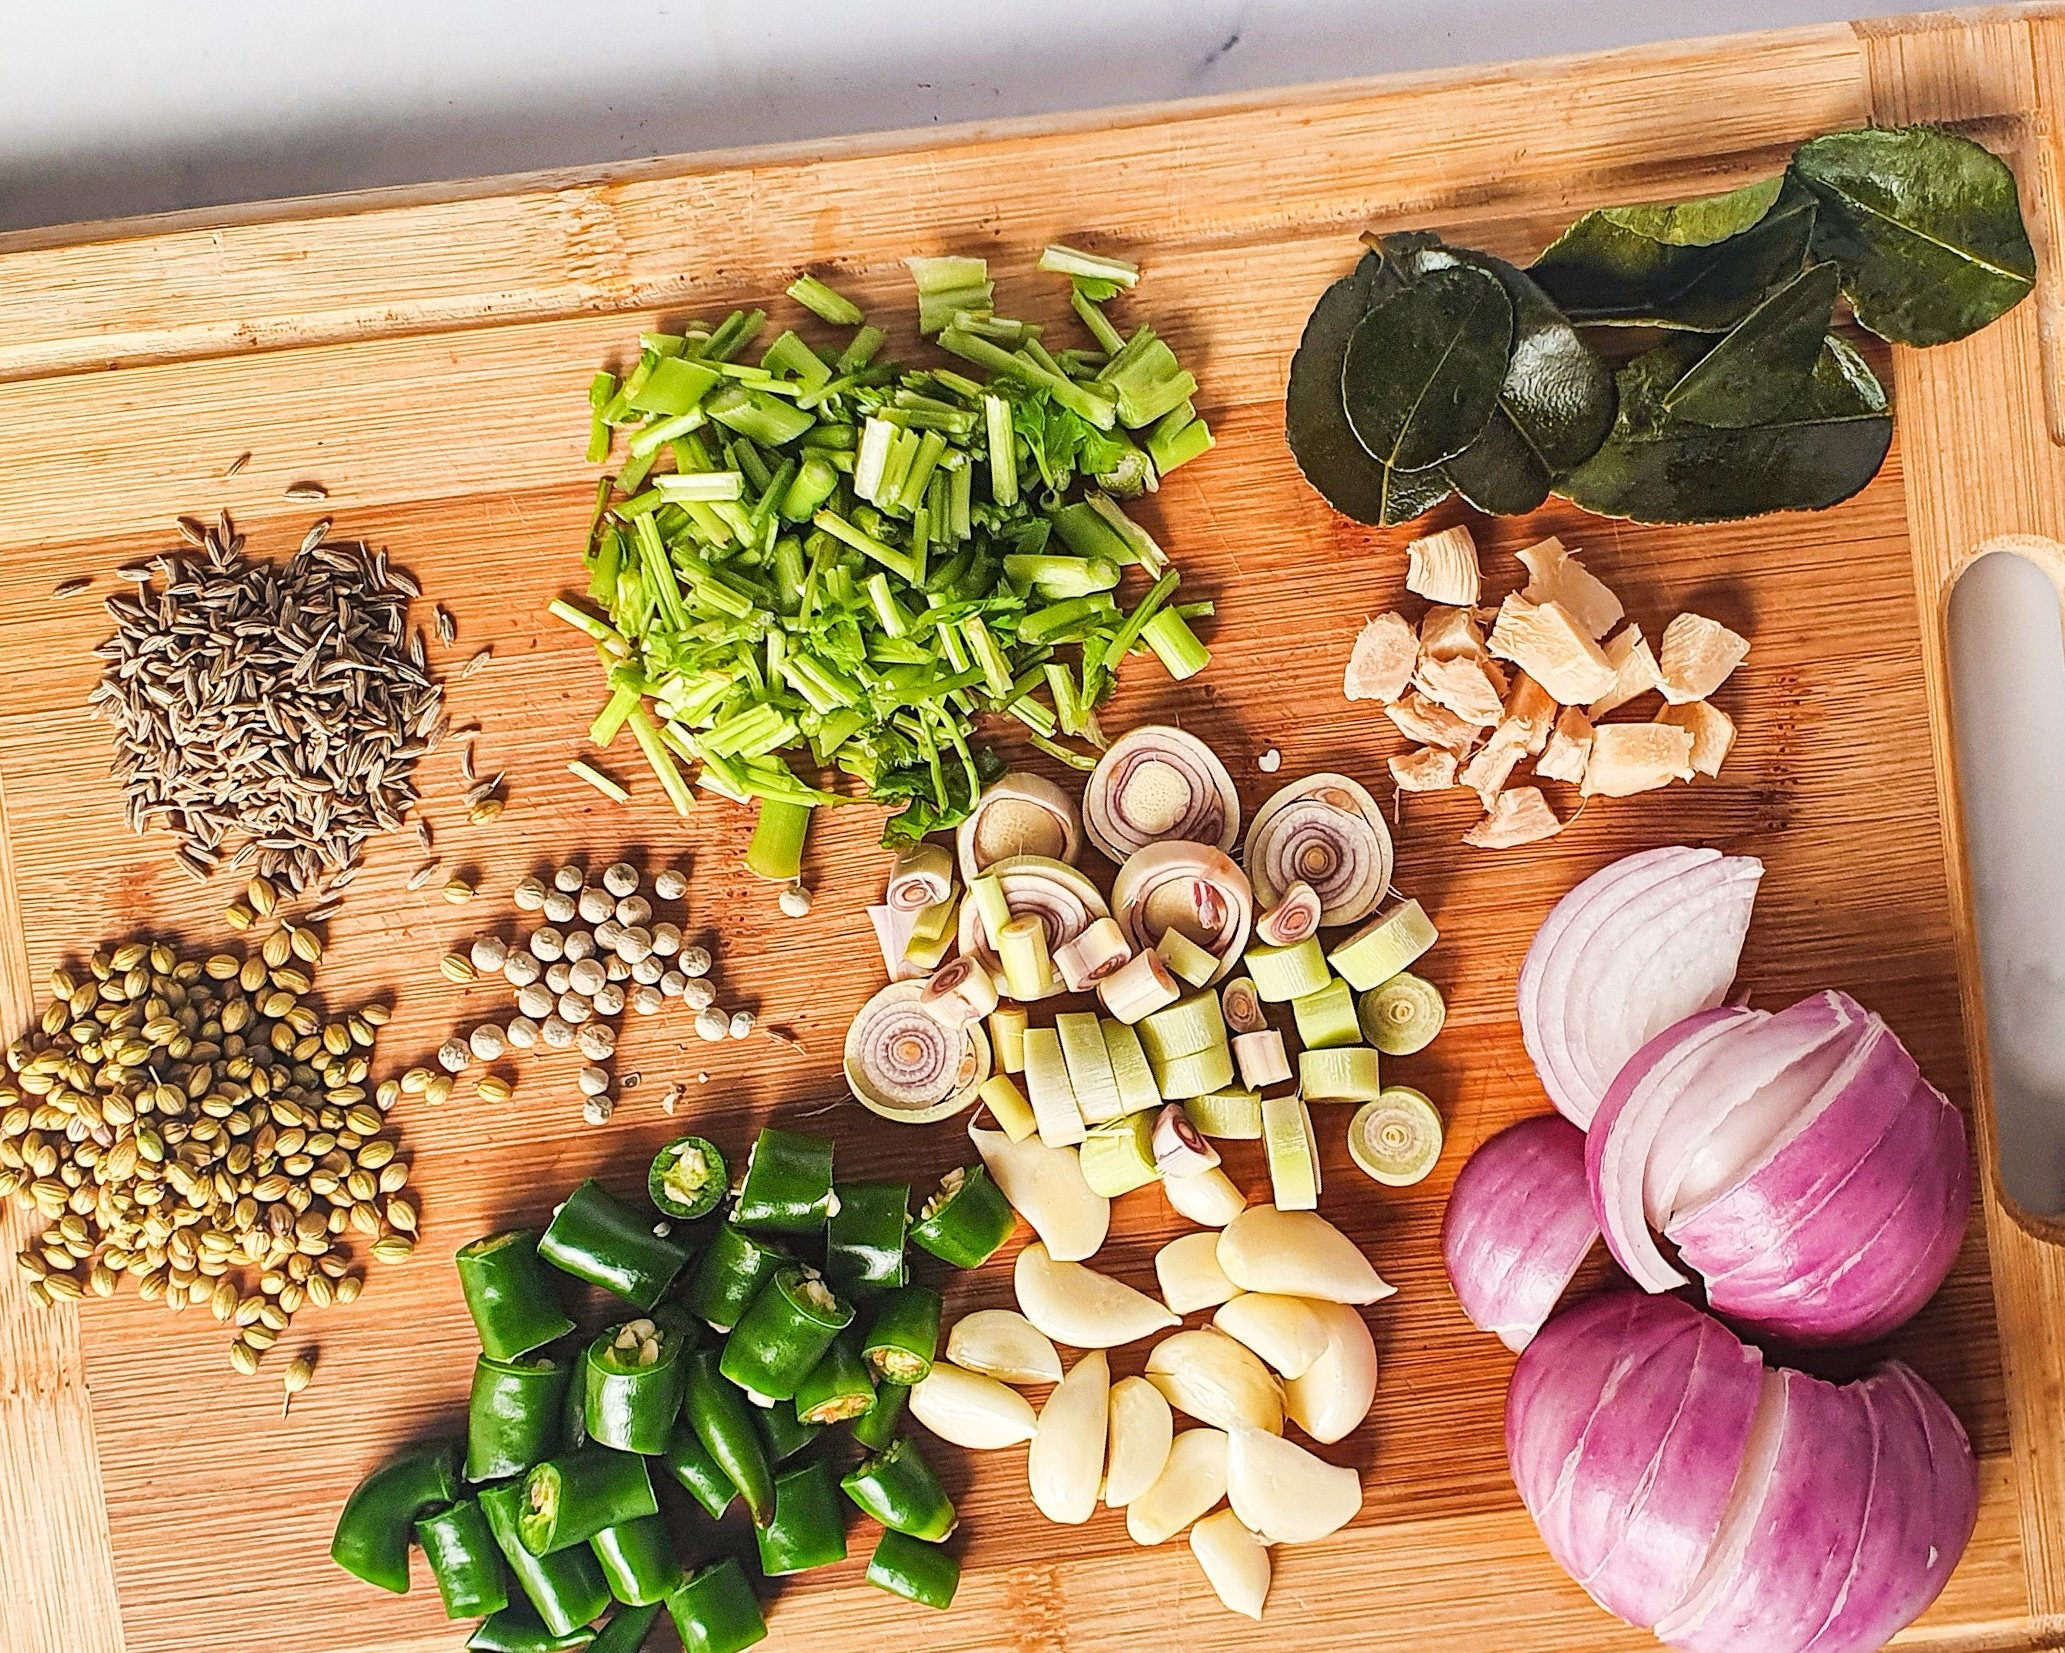 Thai Green Curry Noodles Step 1. These Thai Green Curry Noodles boast a flavorful broth made with coconut milk and fresh ingredients. Fill your bowl with fresh veggies, shrimp, tofu, and rice noodles for a flavorful easy weeknight dinner recipe.